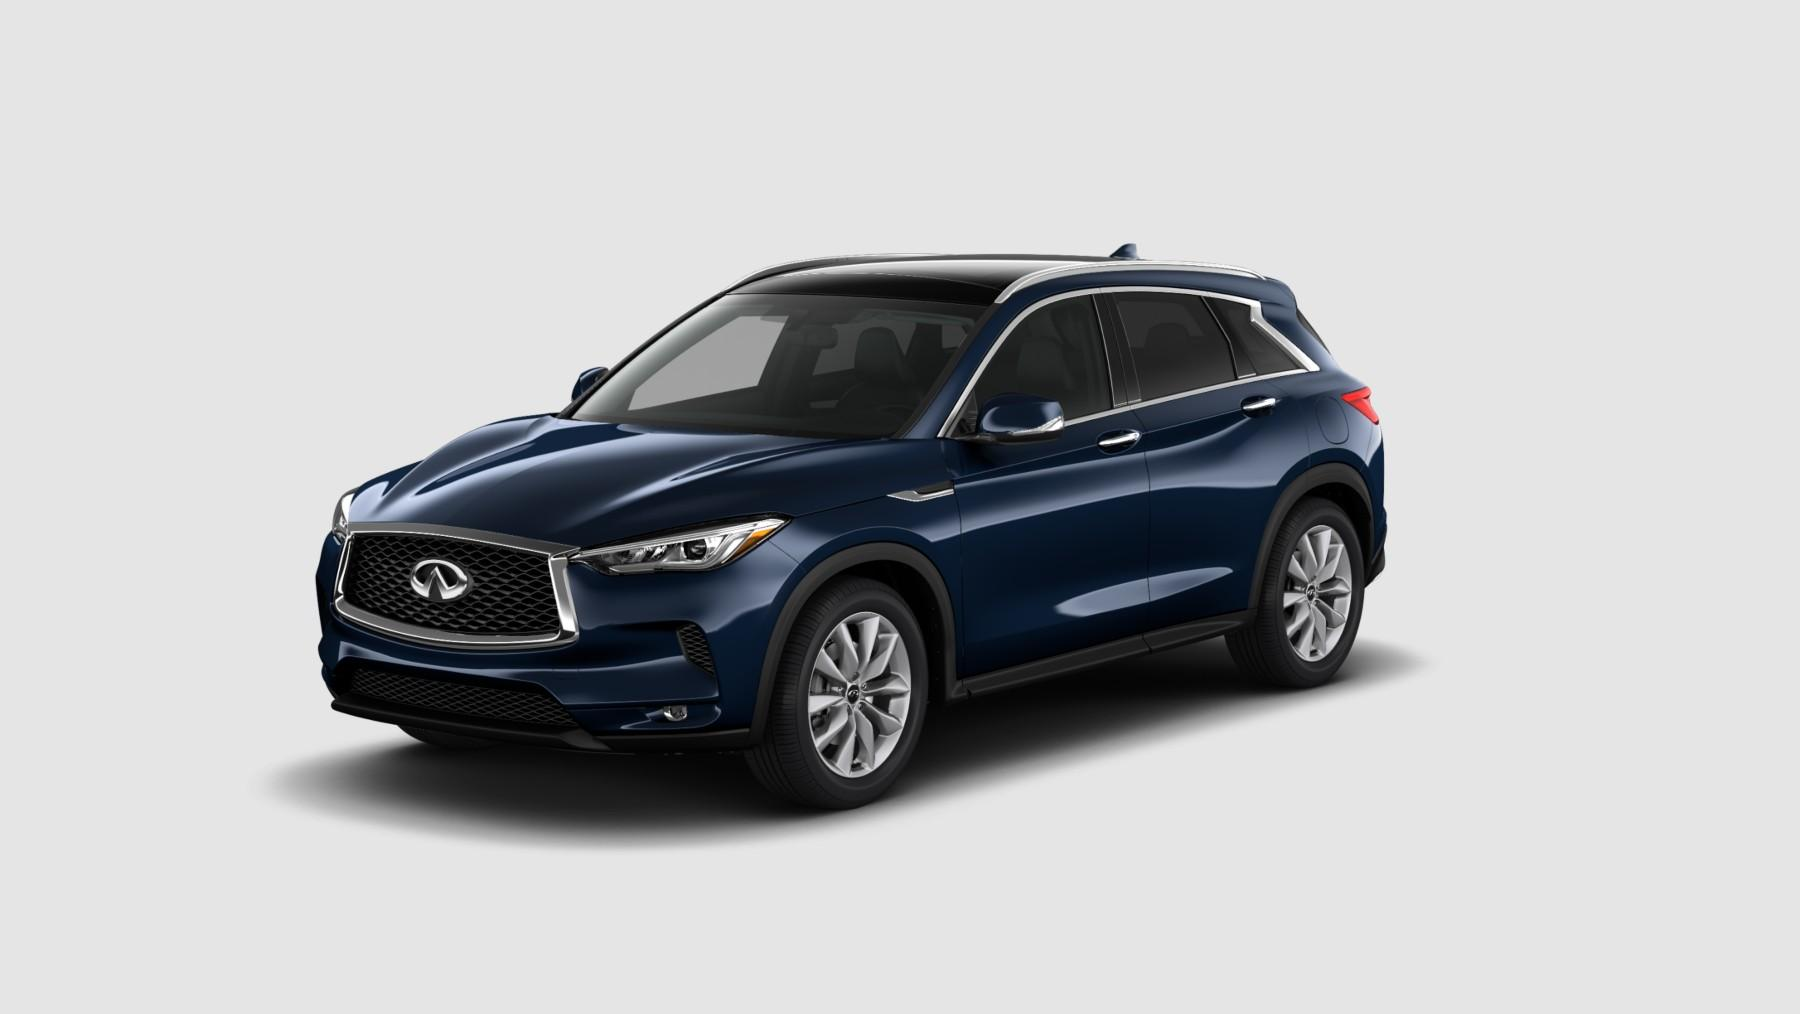 2019 INFINITI QX50 Vehicle Photo in Dallas, TX 75209